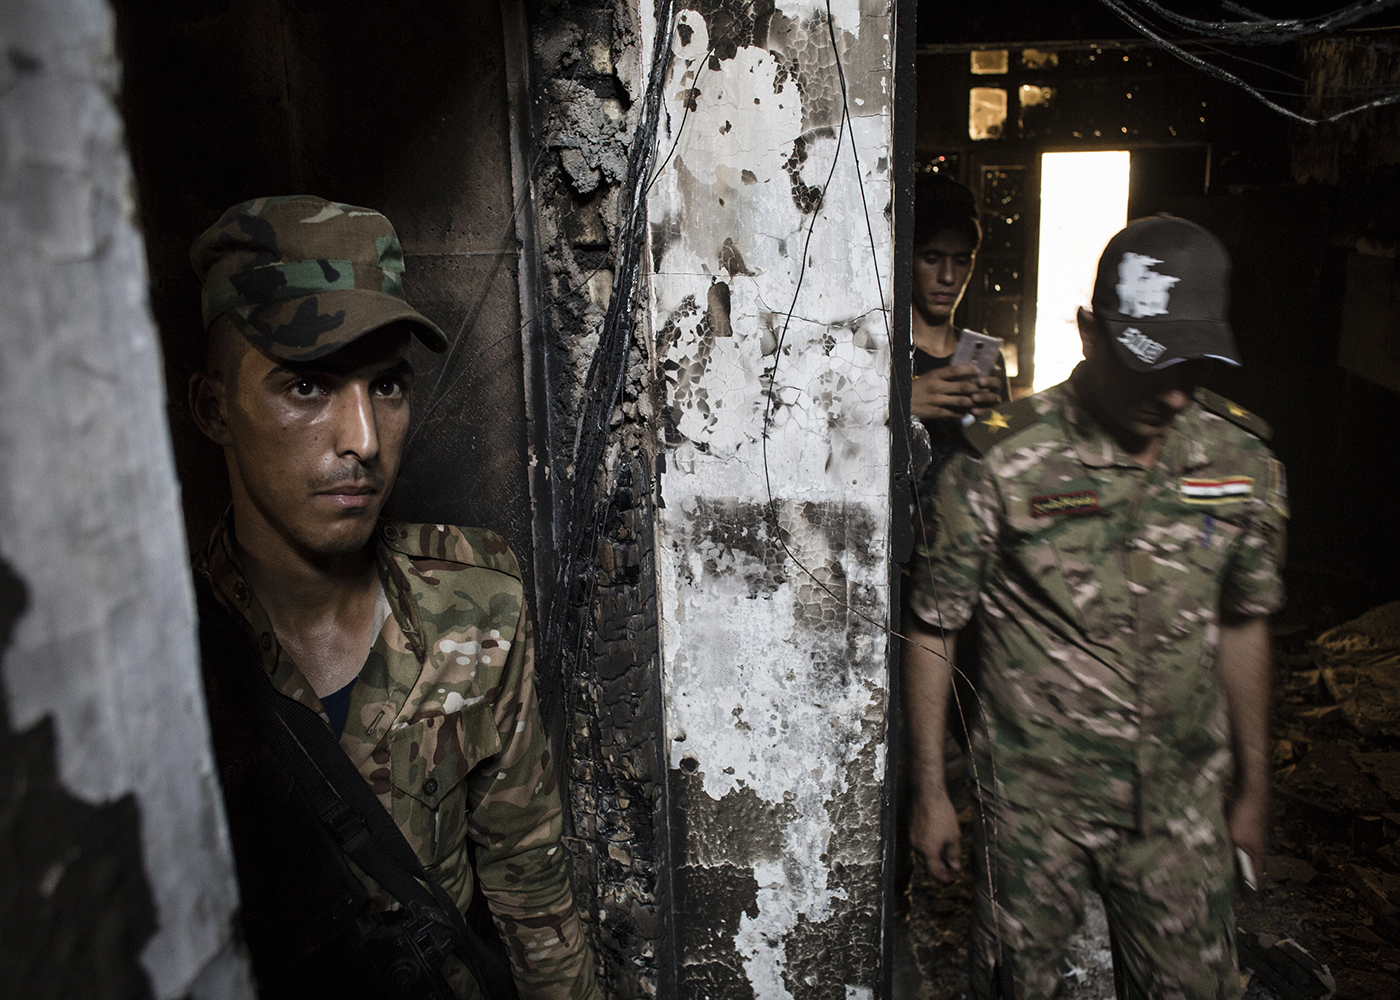 26/06/2016 -- Fallujah, Iraq -- SWAT soldiers inside the building where they found an ISIS prison in the Muallimin neighborhood of Fallujah.It's one of the two prison found by police forces spread across three houses. The downstairs rooms used as group cells and the upstairs for solitary confinement.